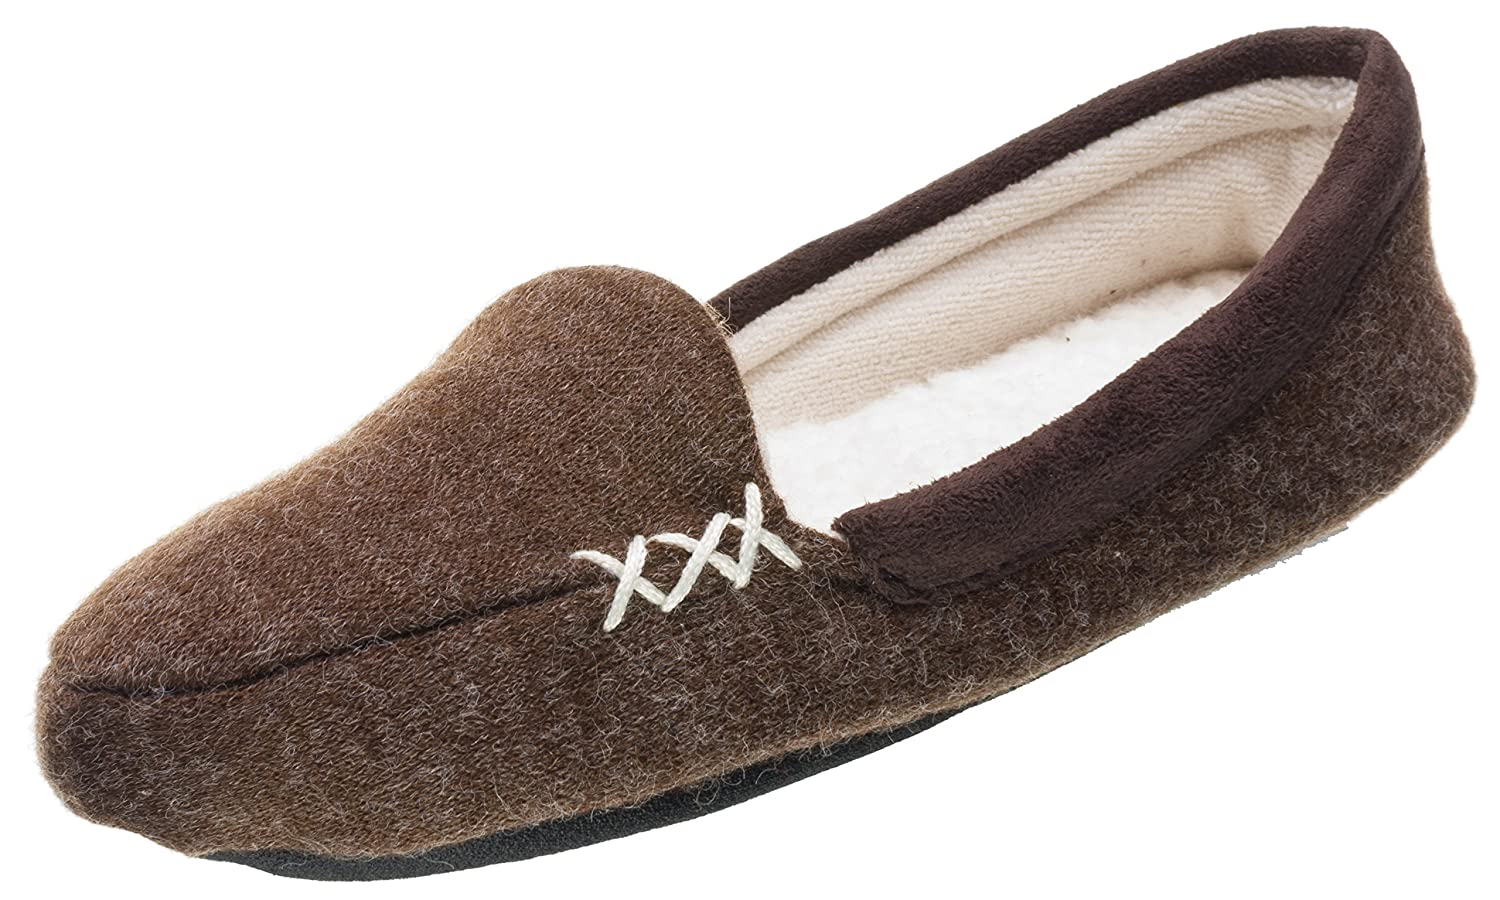 ISOTONER Women's Microsuede Heather Knit Marisol Moc